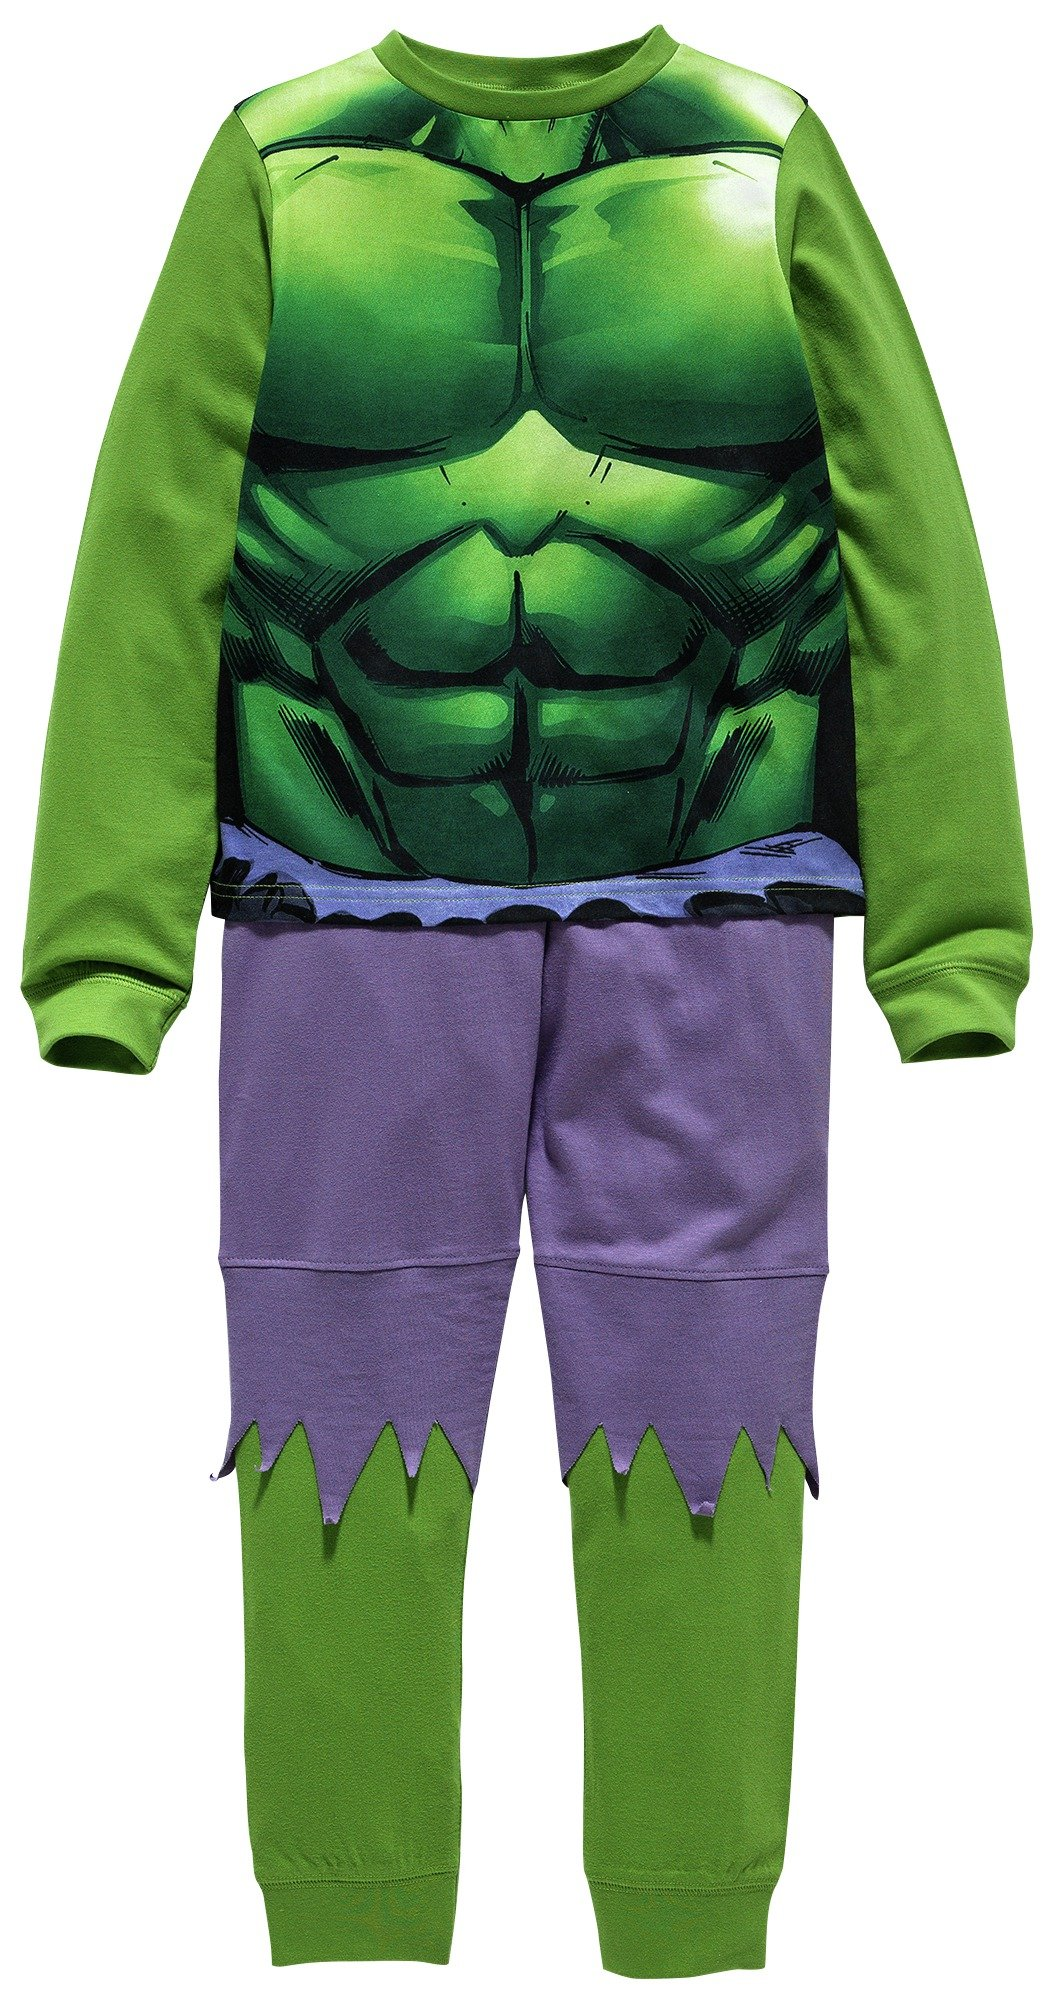 Image of Hulk Novelty Pyjamas - 5-6 Years.